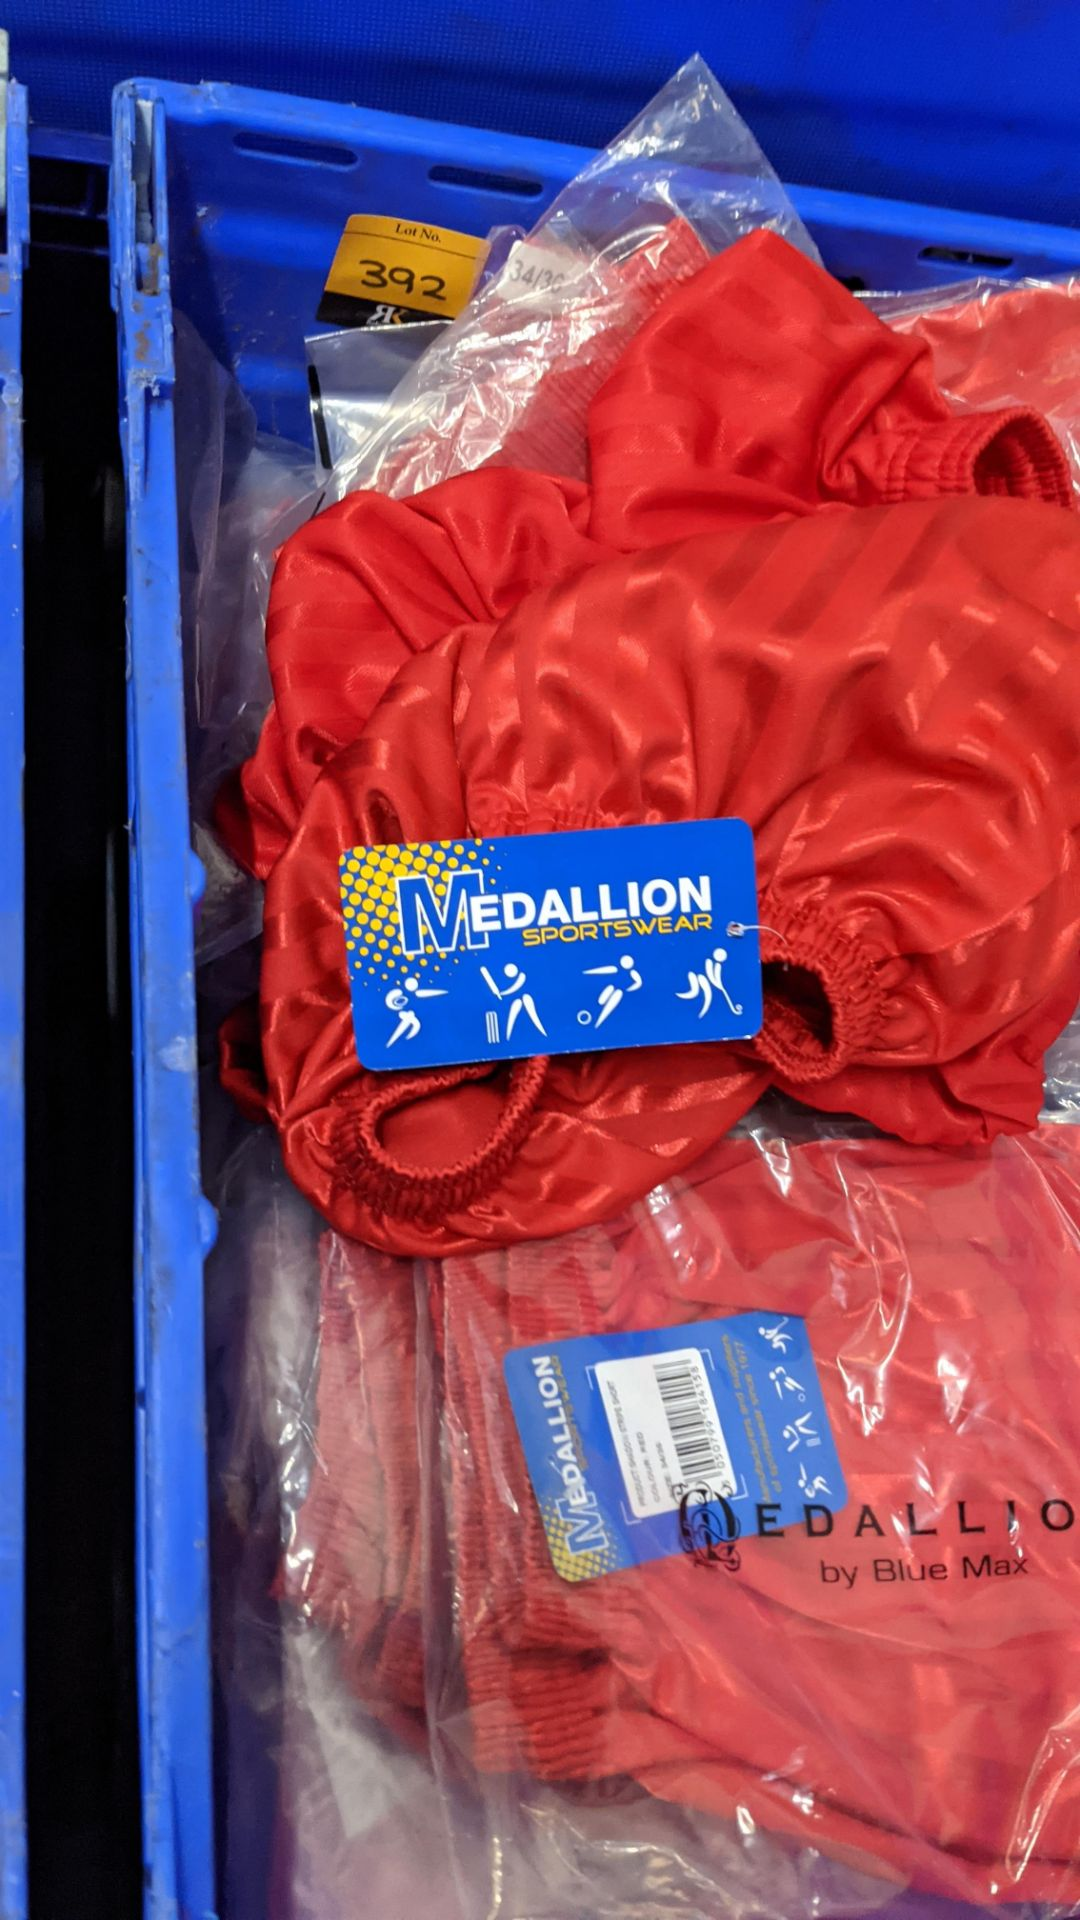 Approx 20 off red children's sports shorts - Image 3 of 5